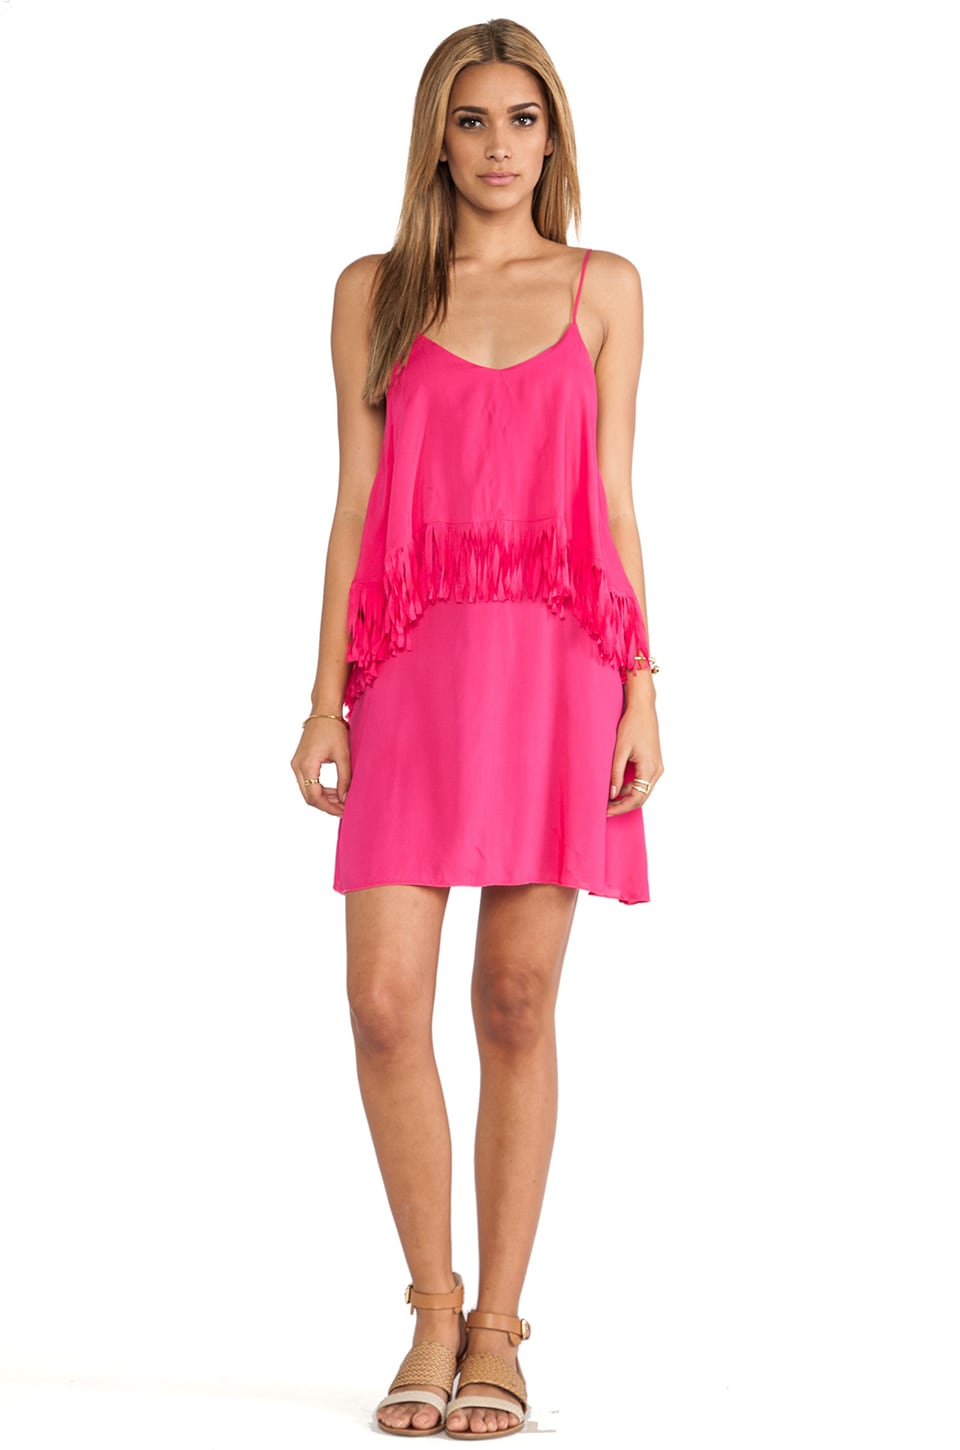 L*SPACE Wilde Fringe Mini Dress in Hot Pink